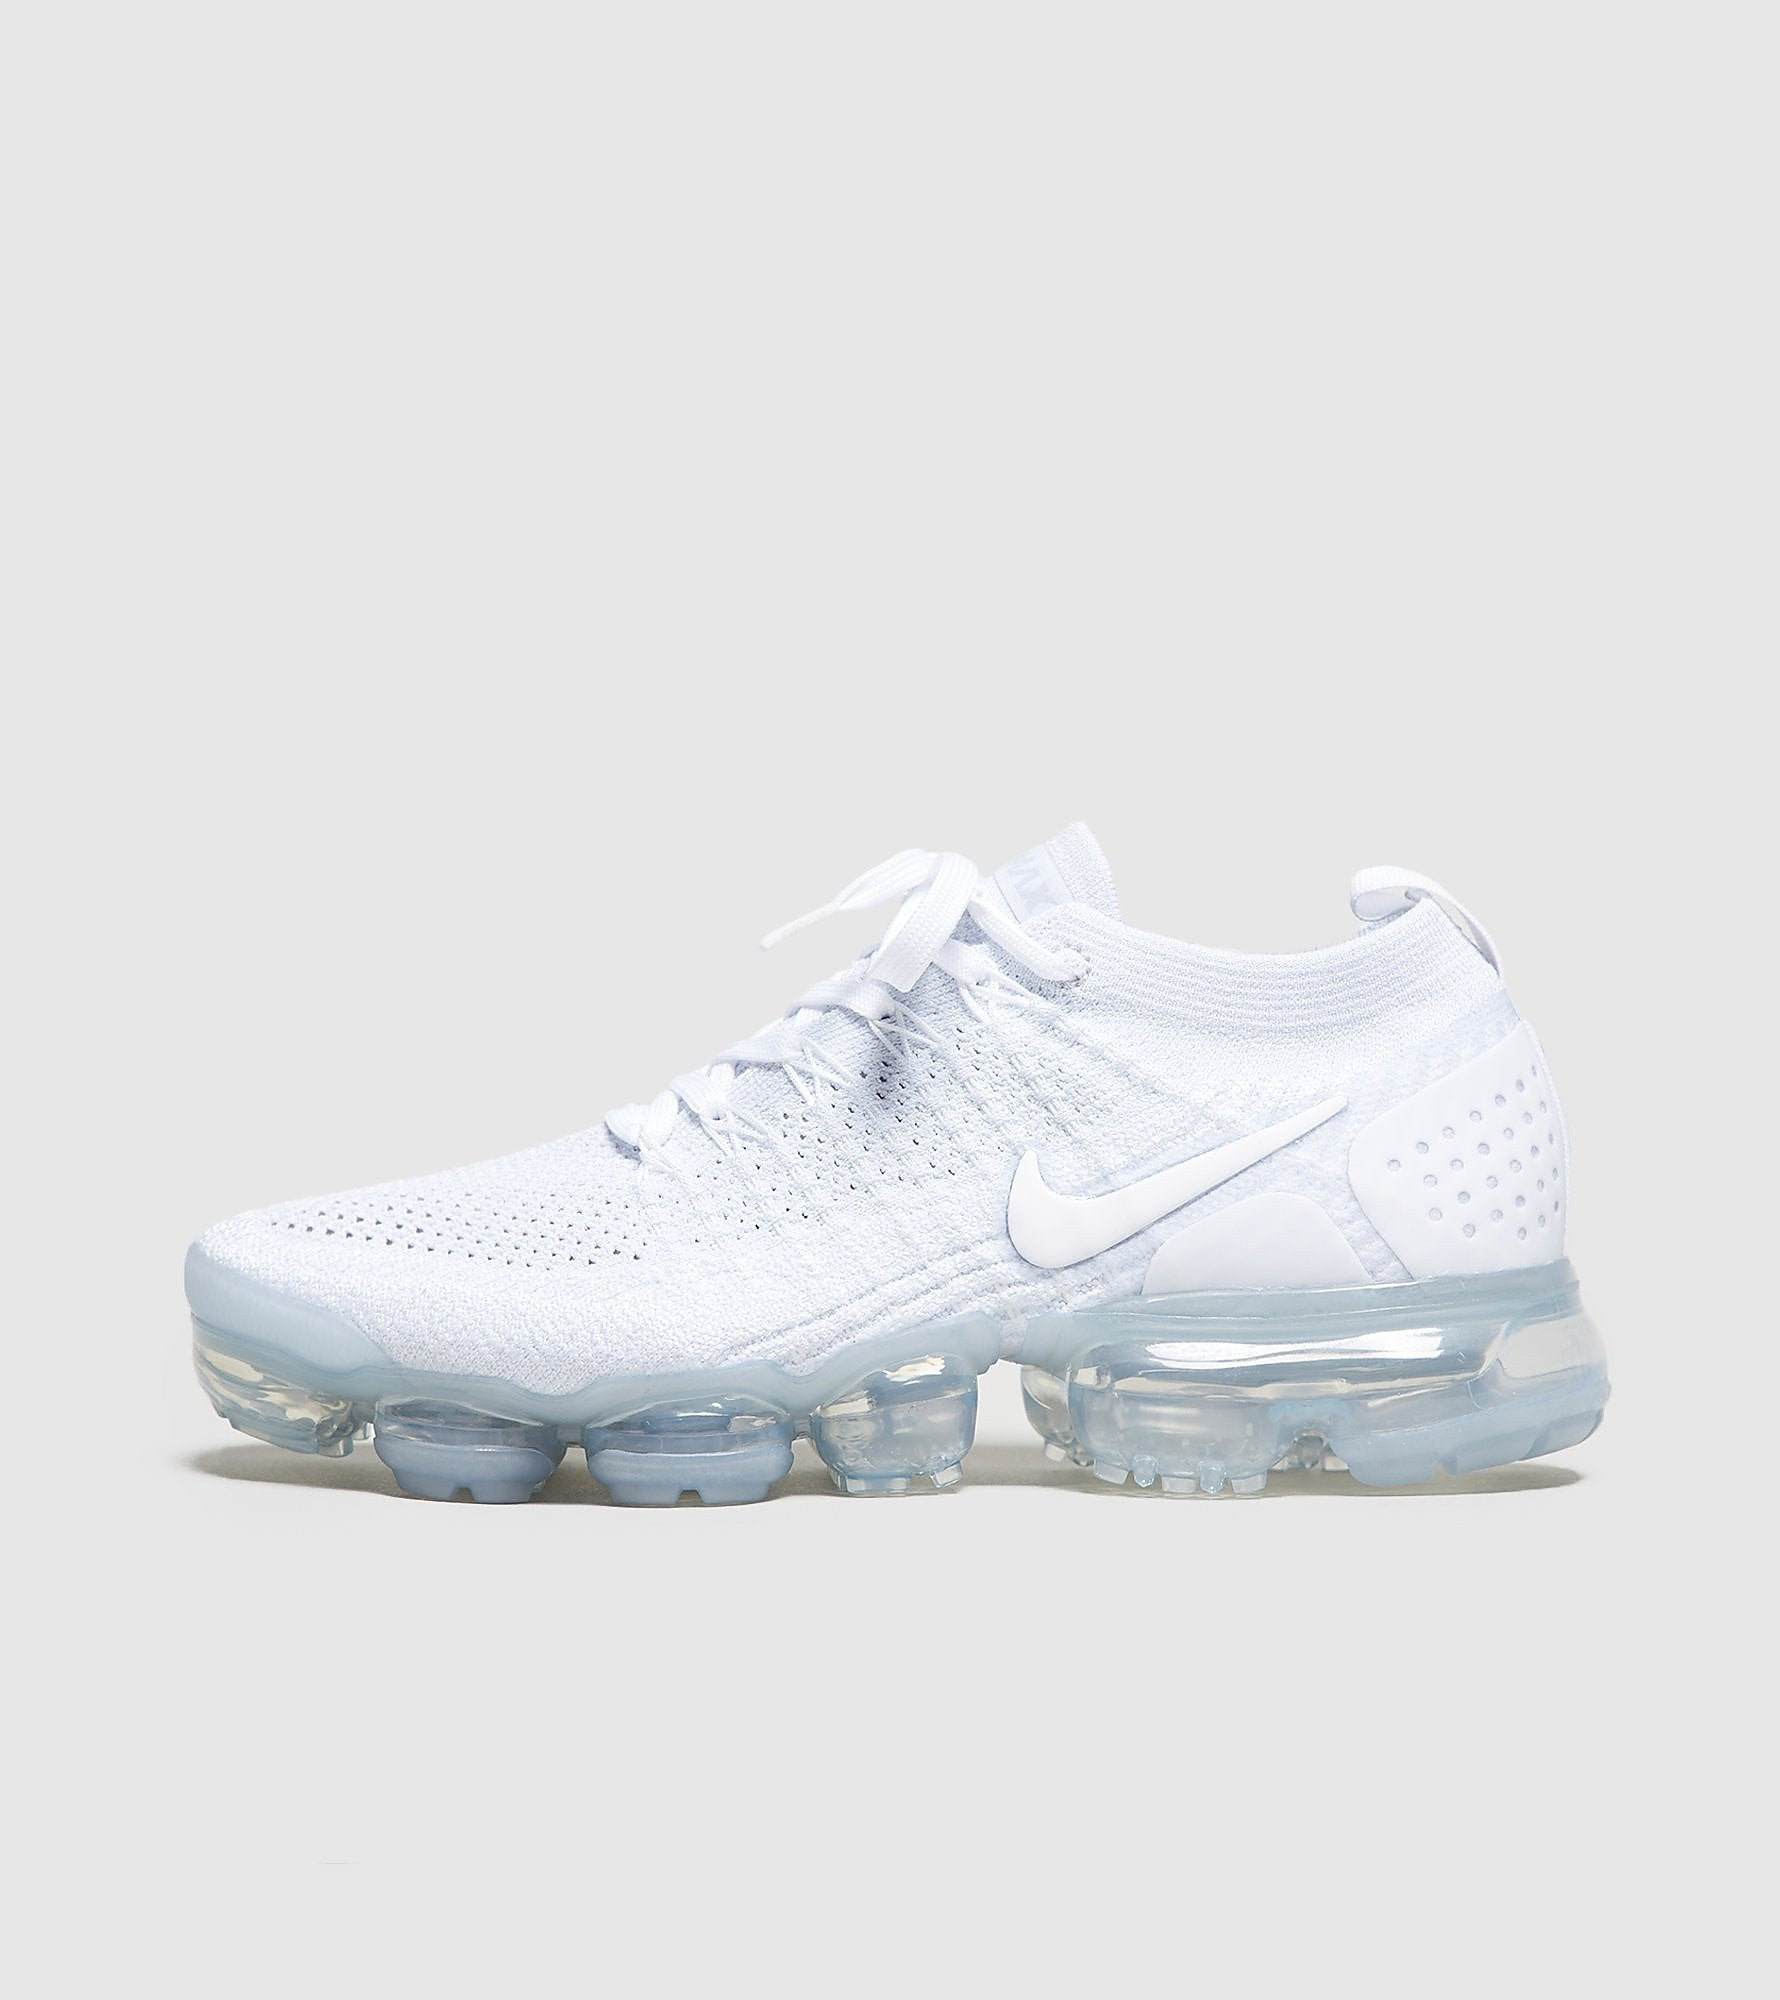 cerebro Entretener mañana  Nike Nike Air VaporMax Flyknit 2 Women's, White at Soleheaven Curated  Collections